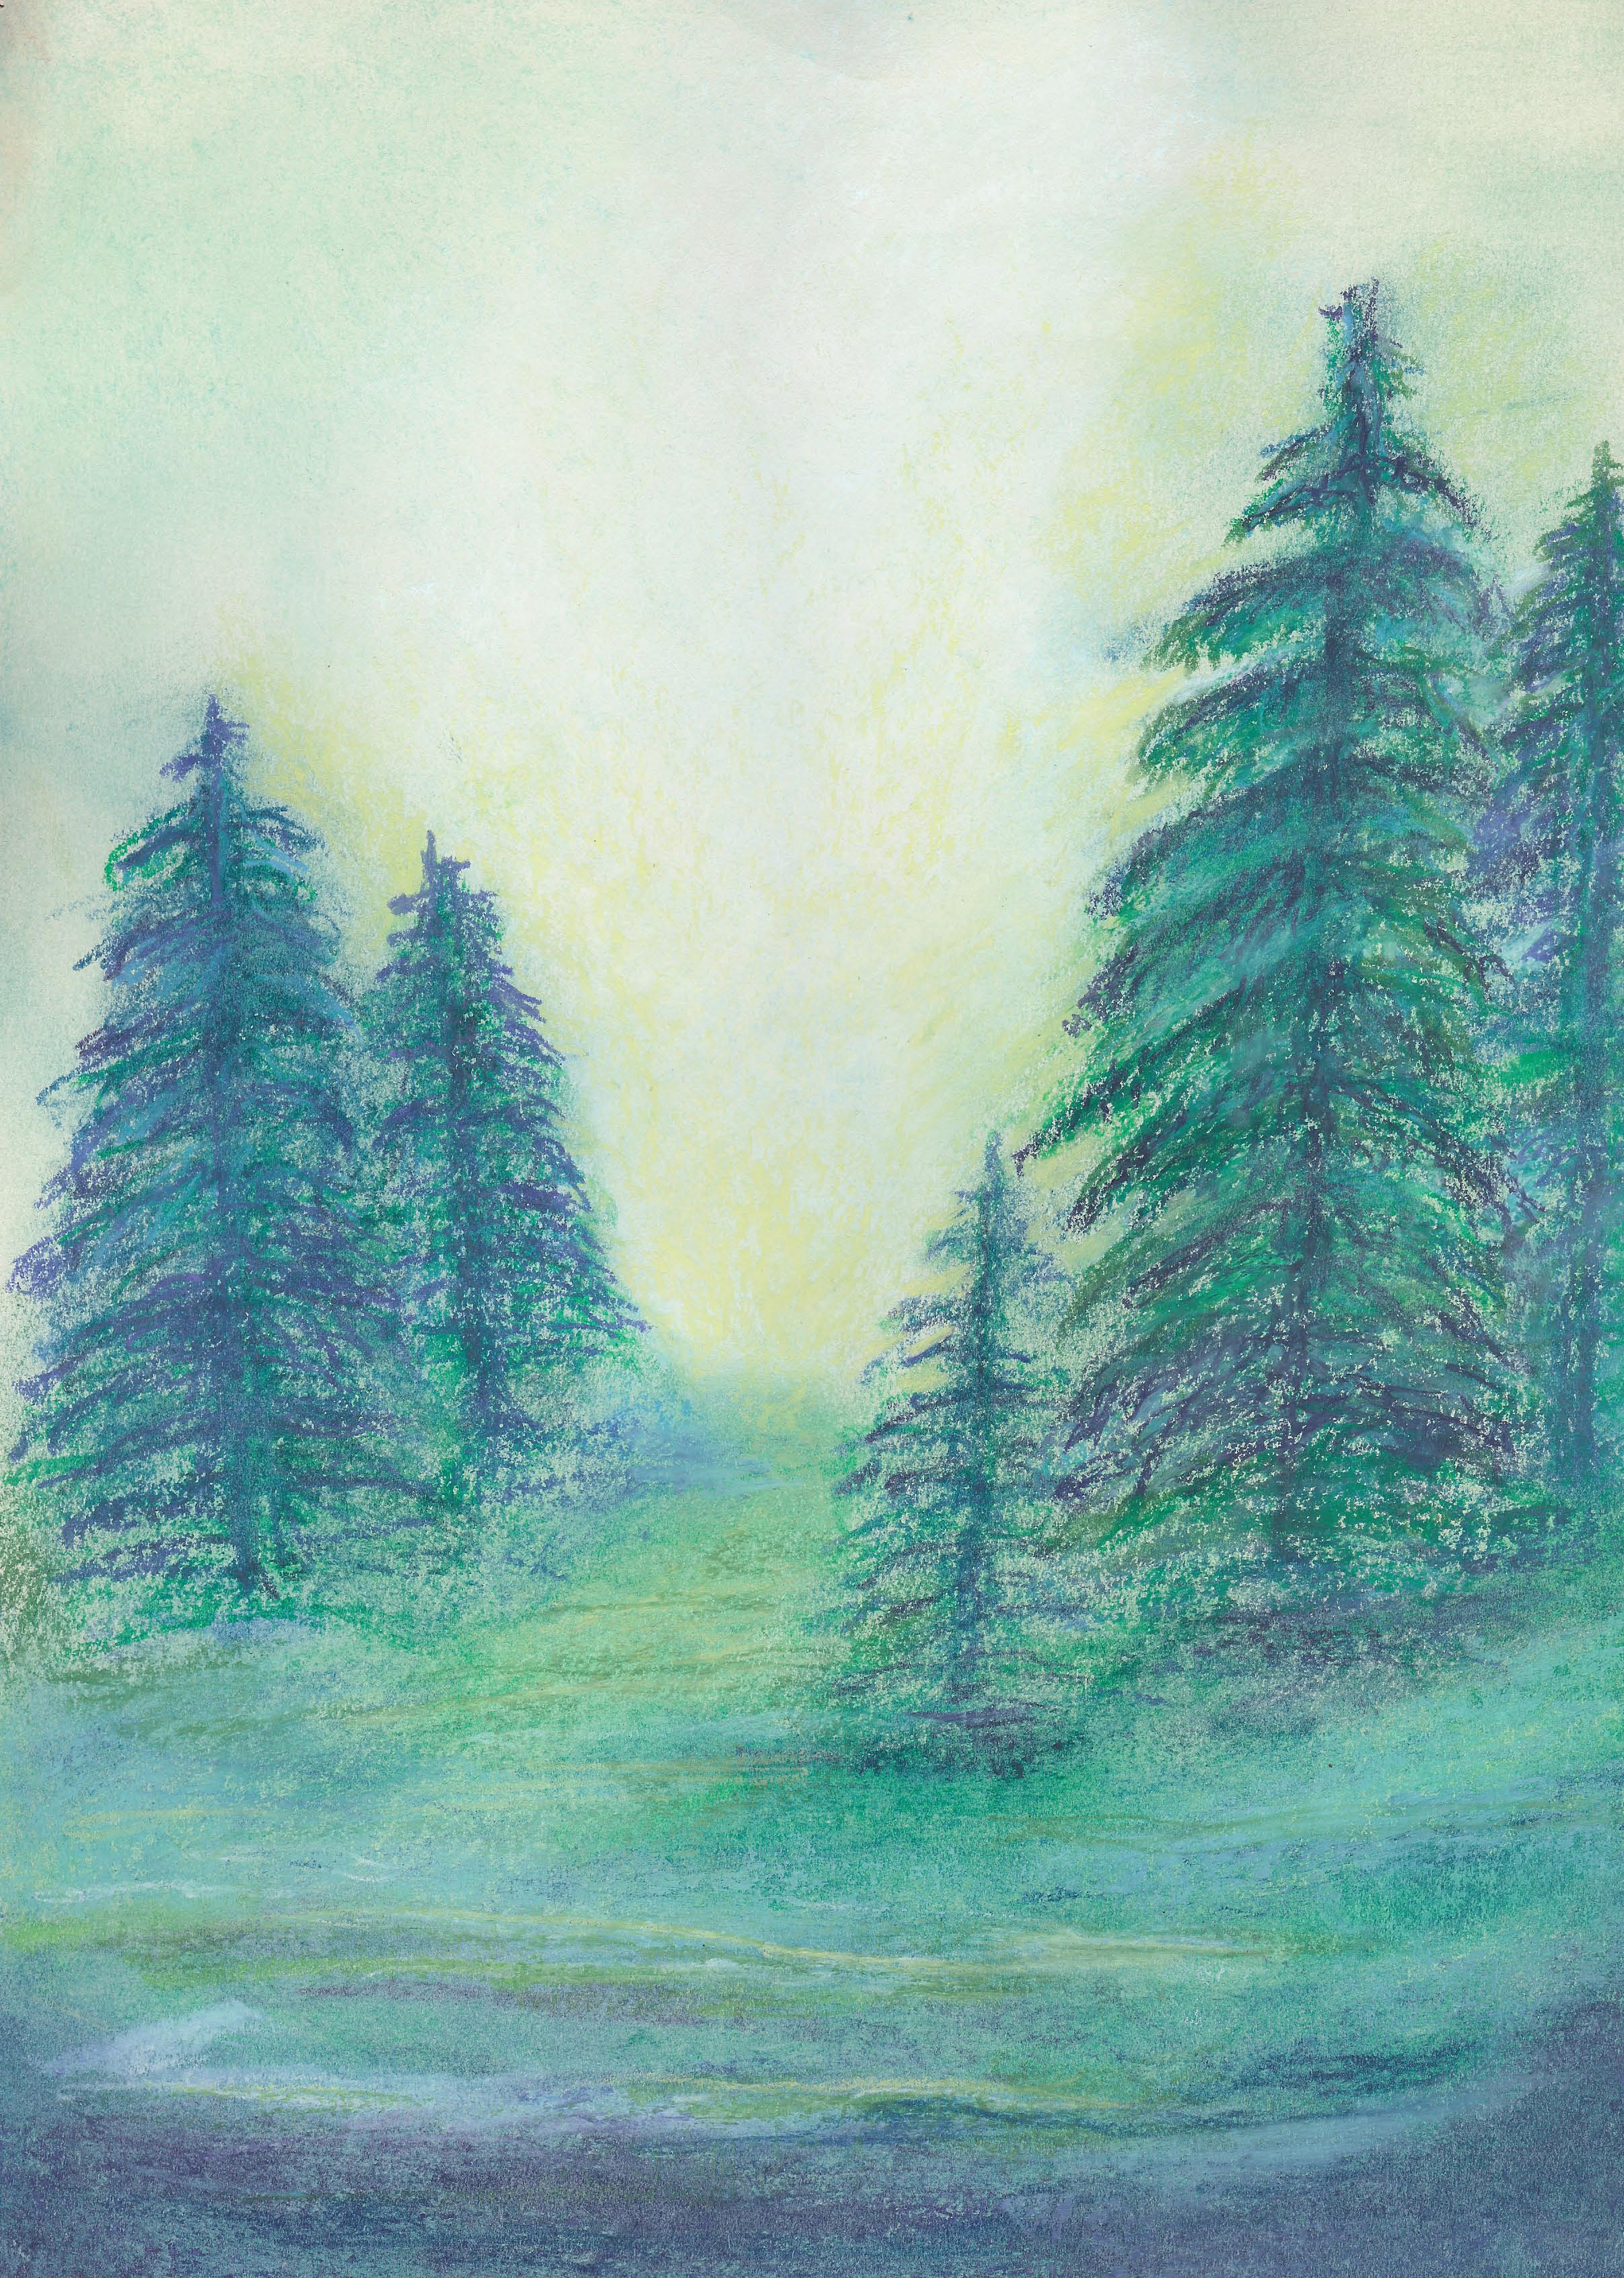 A Small Stand of Trees - Oil Pastel - 8 X 11 - $90